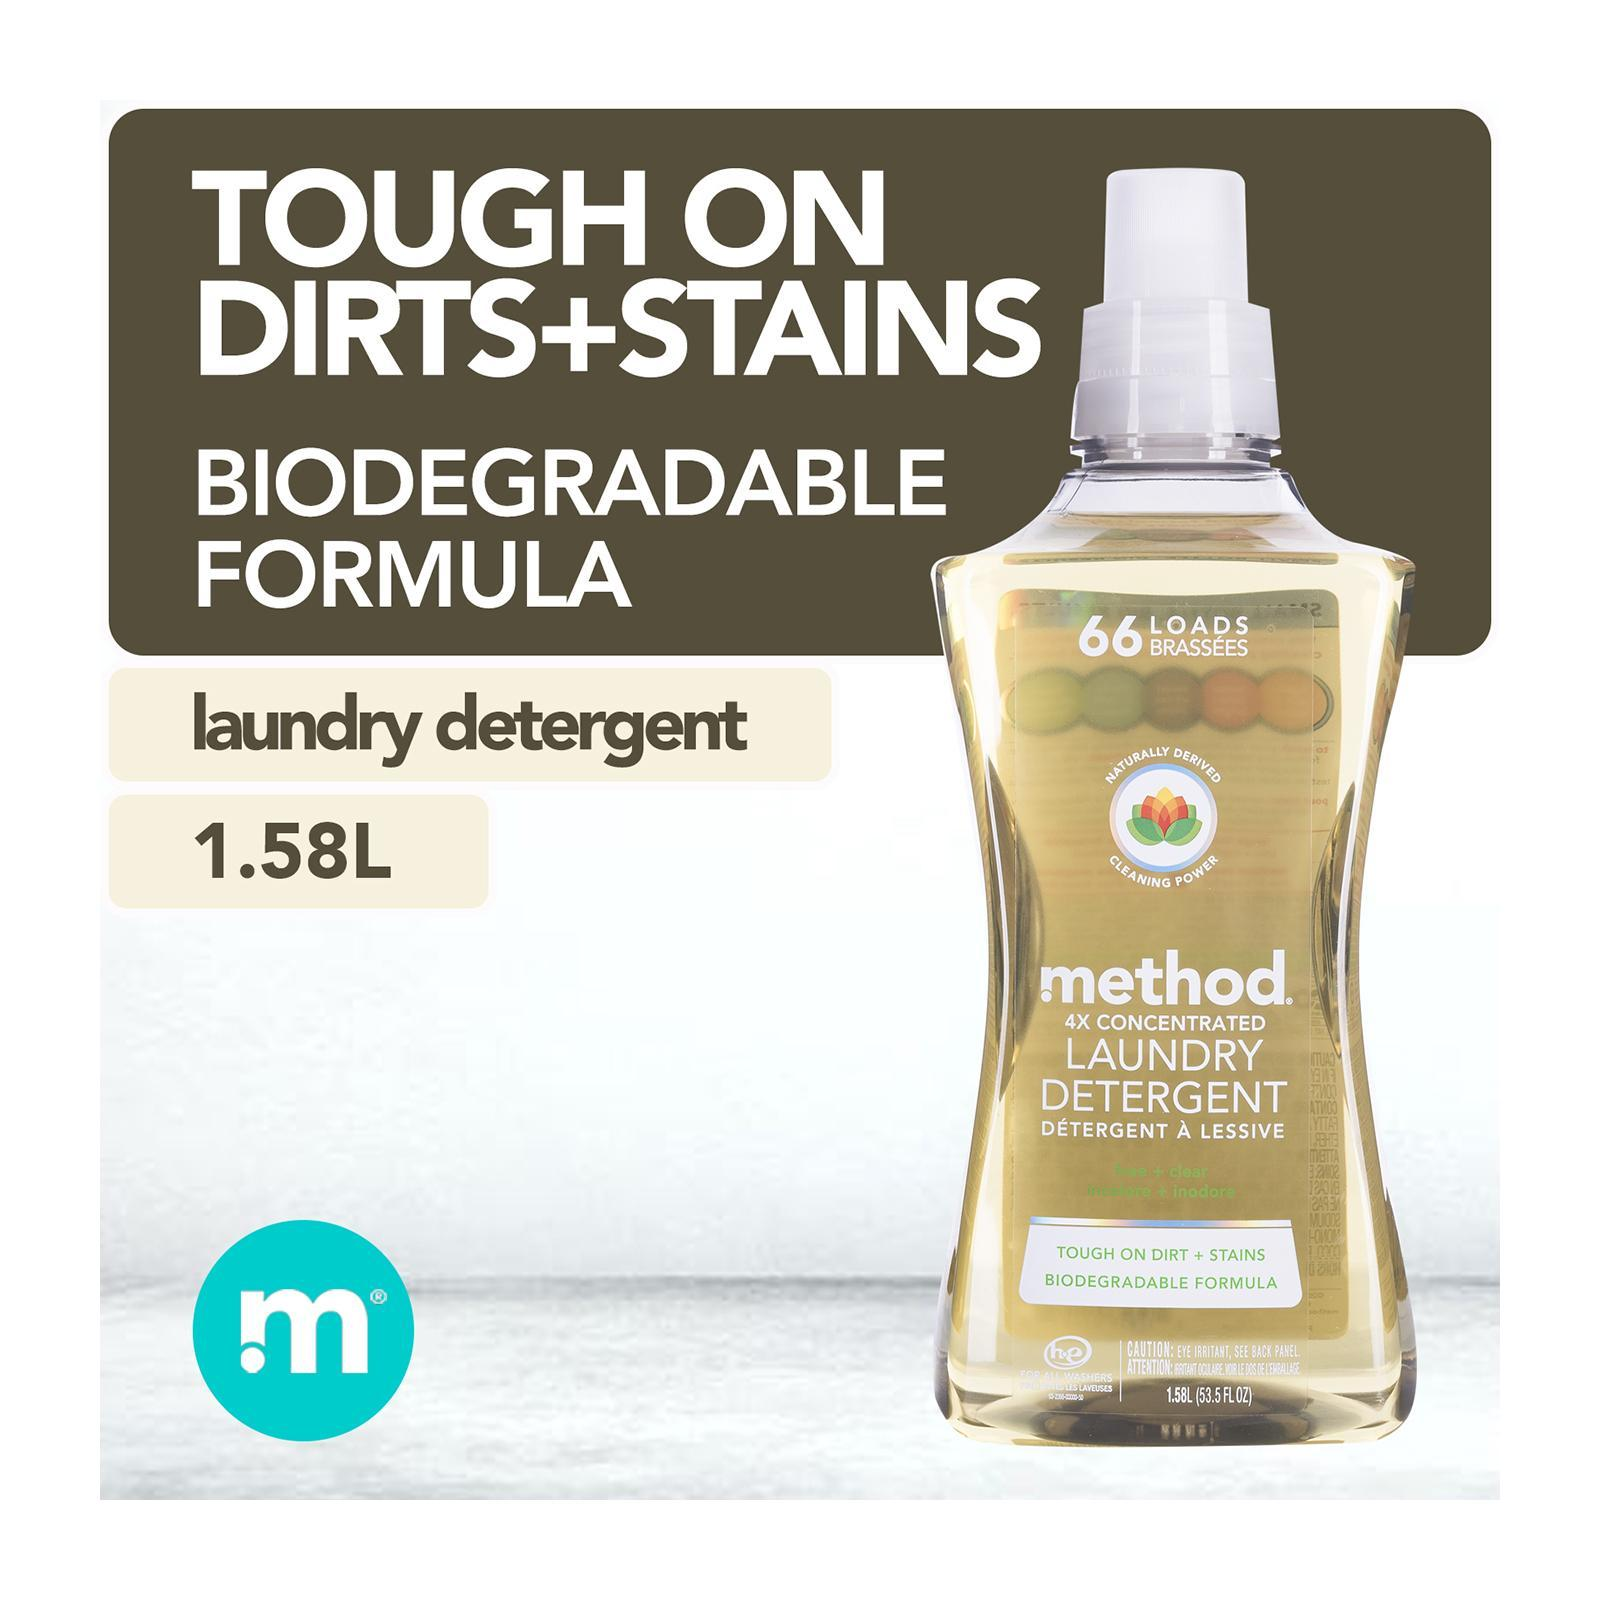 Method 4X Concentrated Laundry Detergent - Free + Clear (66 Loads)